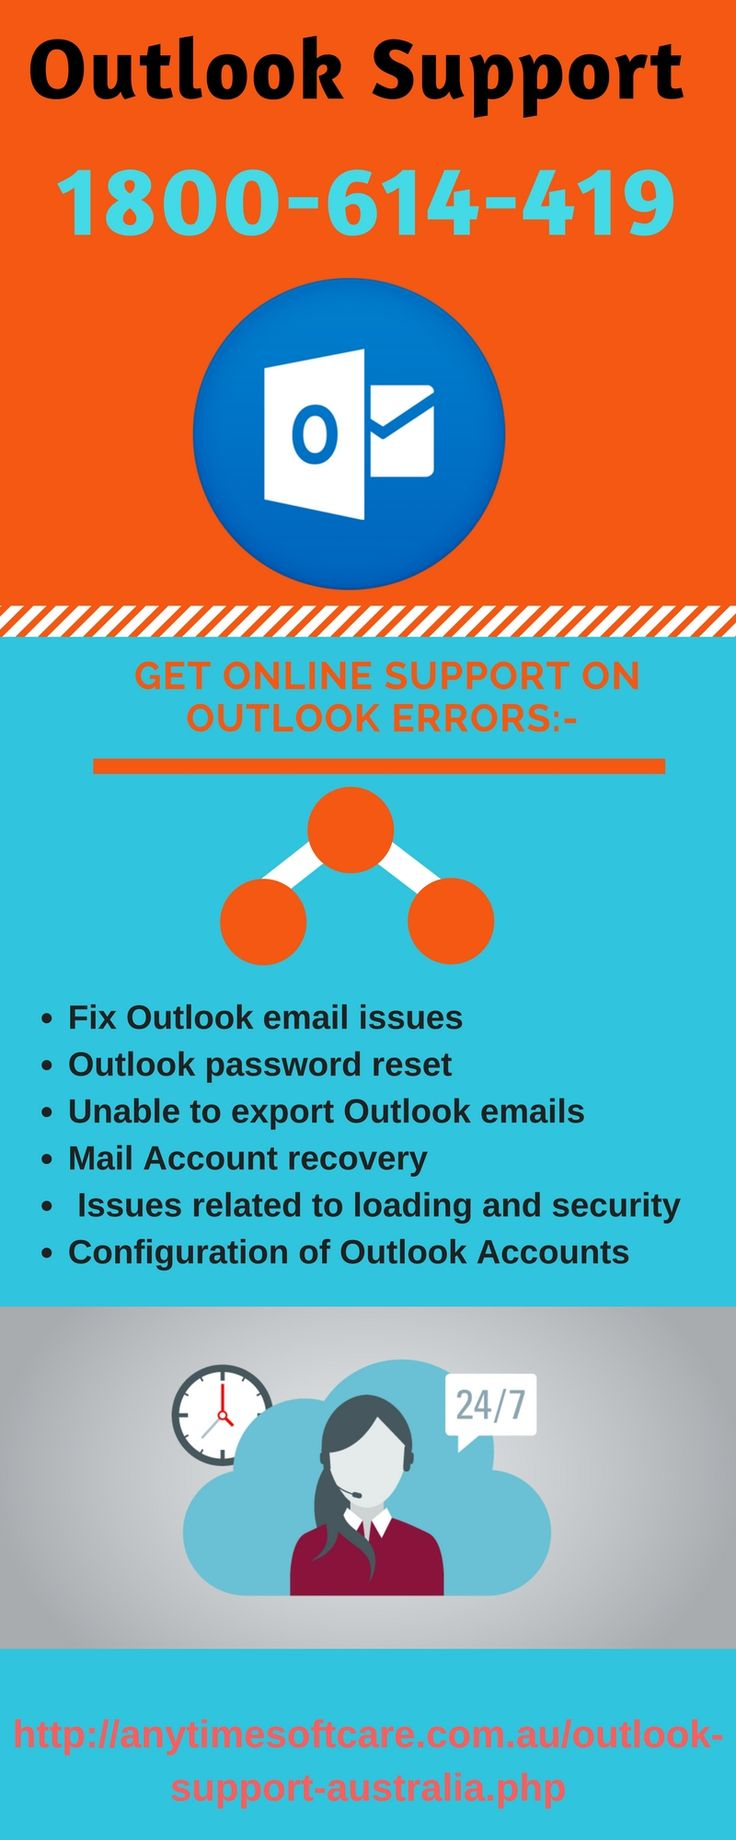 Want Hassle-Free Account Dial 1-800-614-419 For Outlook Support   We ensure a guaranteed solution and easy steps to get rid of problems like hacking, emails not delivering and much more providing Outlook Support to each user of Outlook.  So, if you are the victim, connect to our efficient and experienced technical executives by placing a direct call on toll-free no. 1-800-614-419.